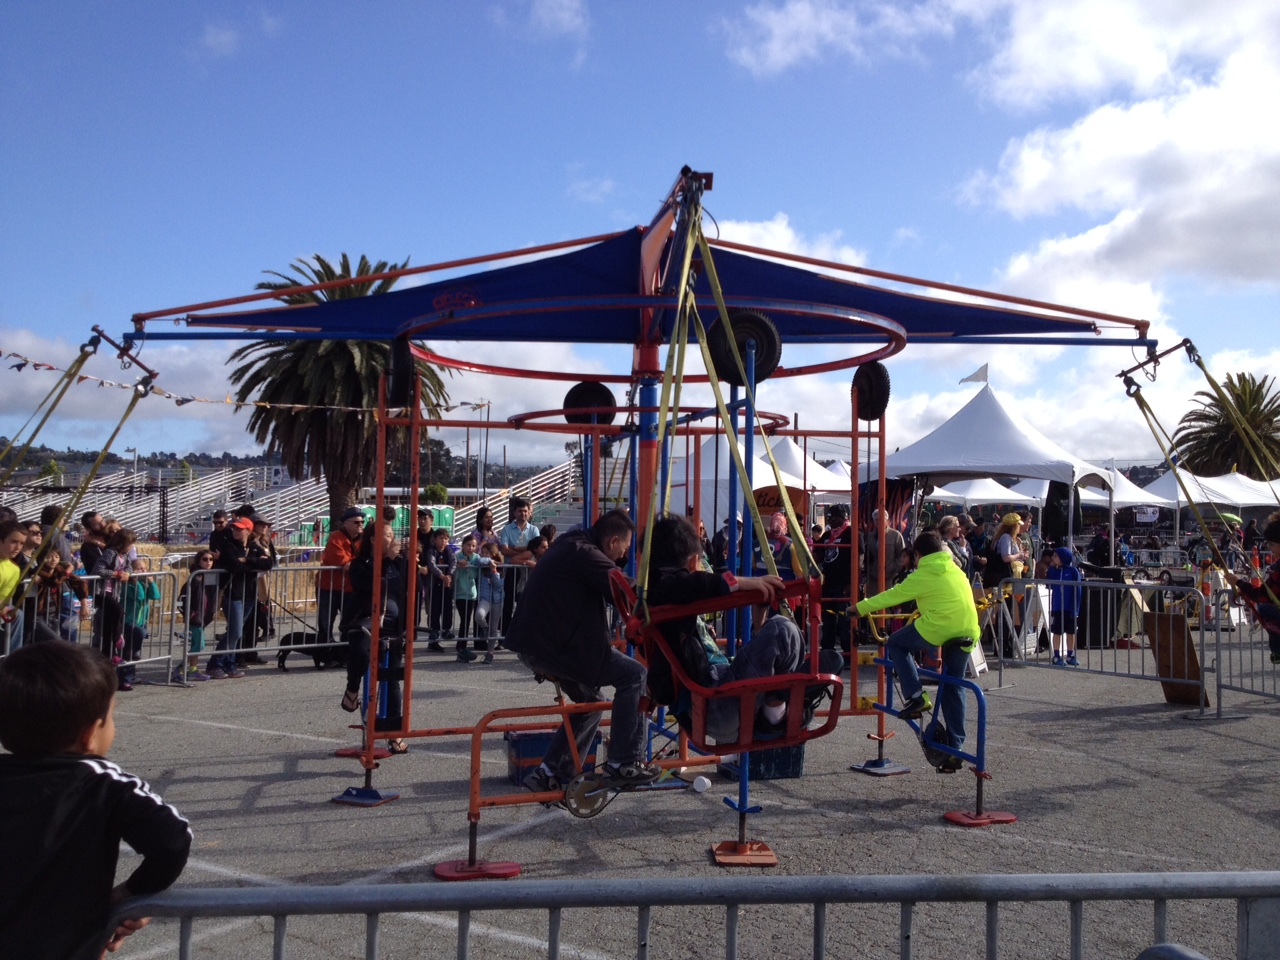 Pedal-powered swings... These things got going pretty fast!